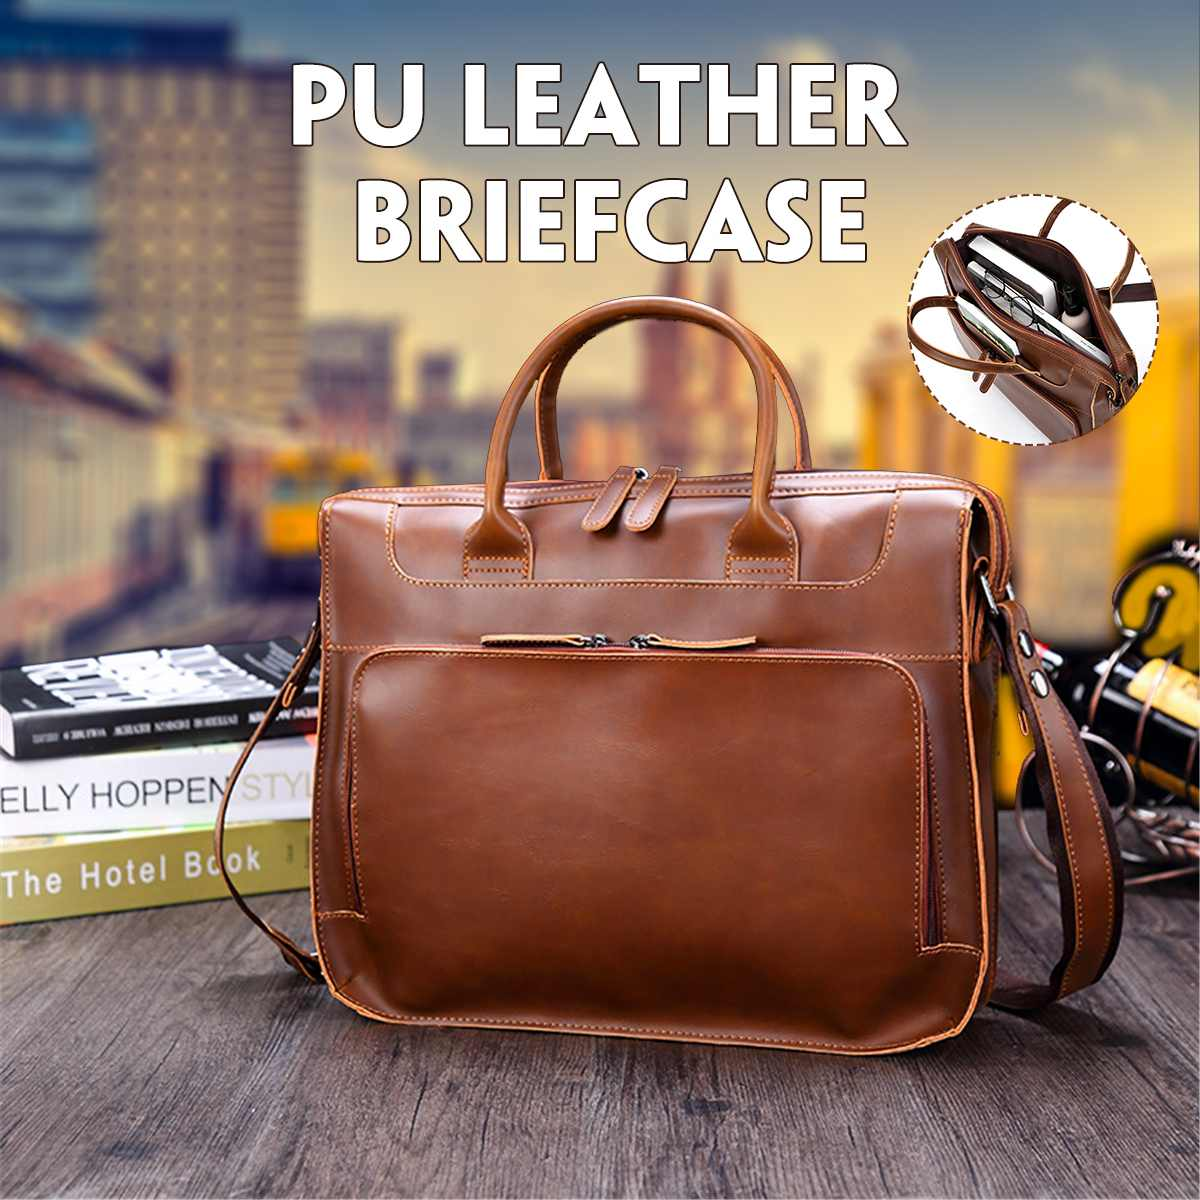 PU Leather Briefcase Mens Fashion Retro Leather Handbags Crossbody Bags Men's High Quality Luxury Business Messenger Bags Laptop